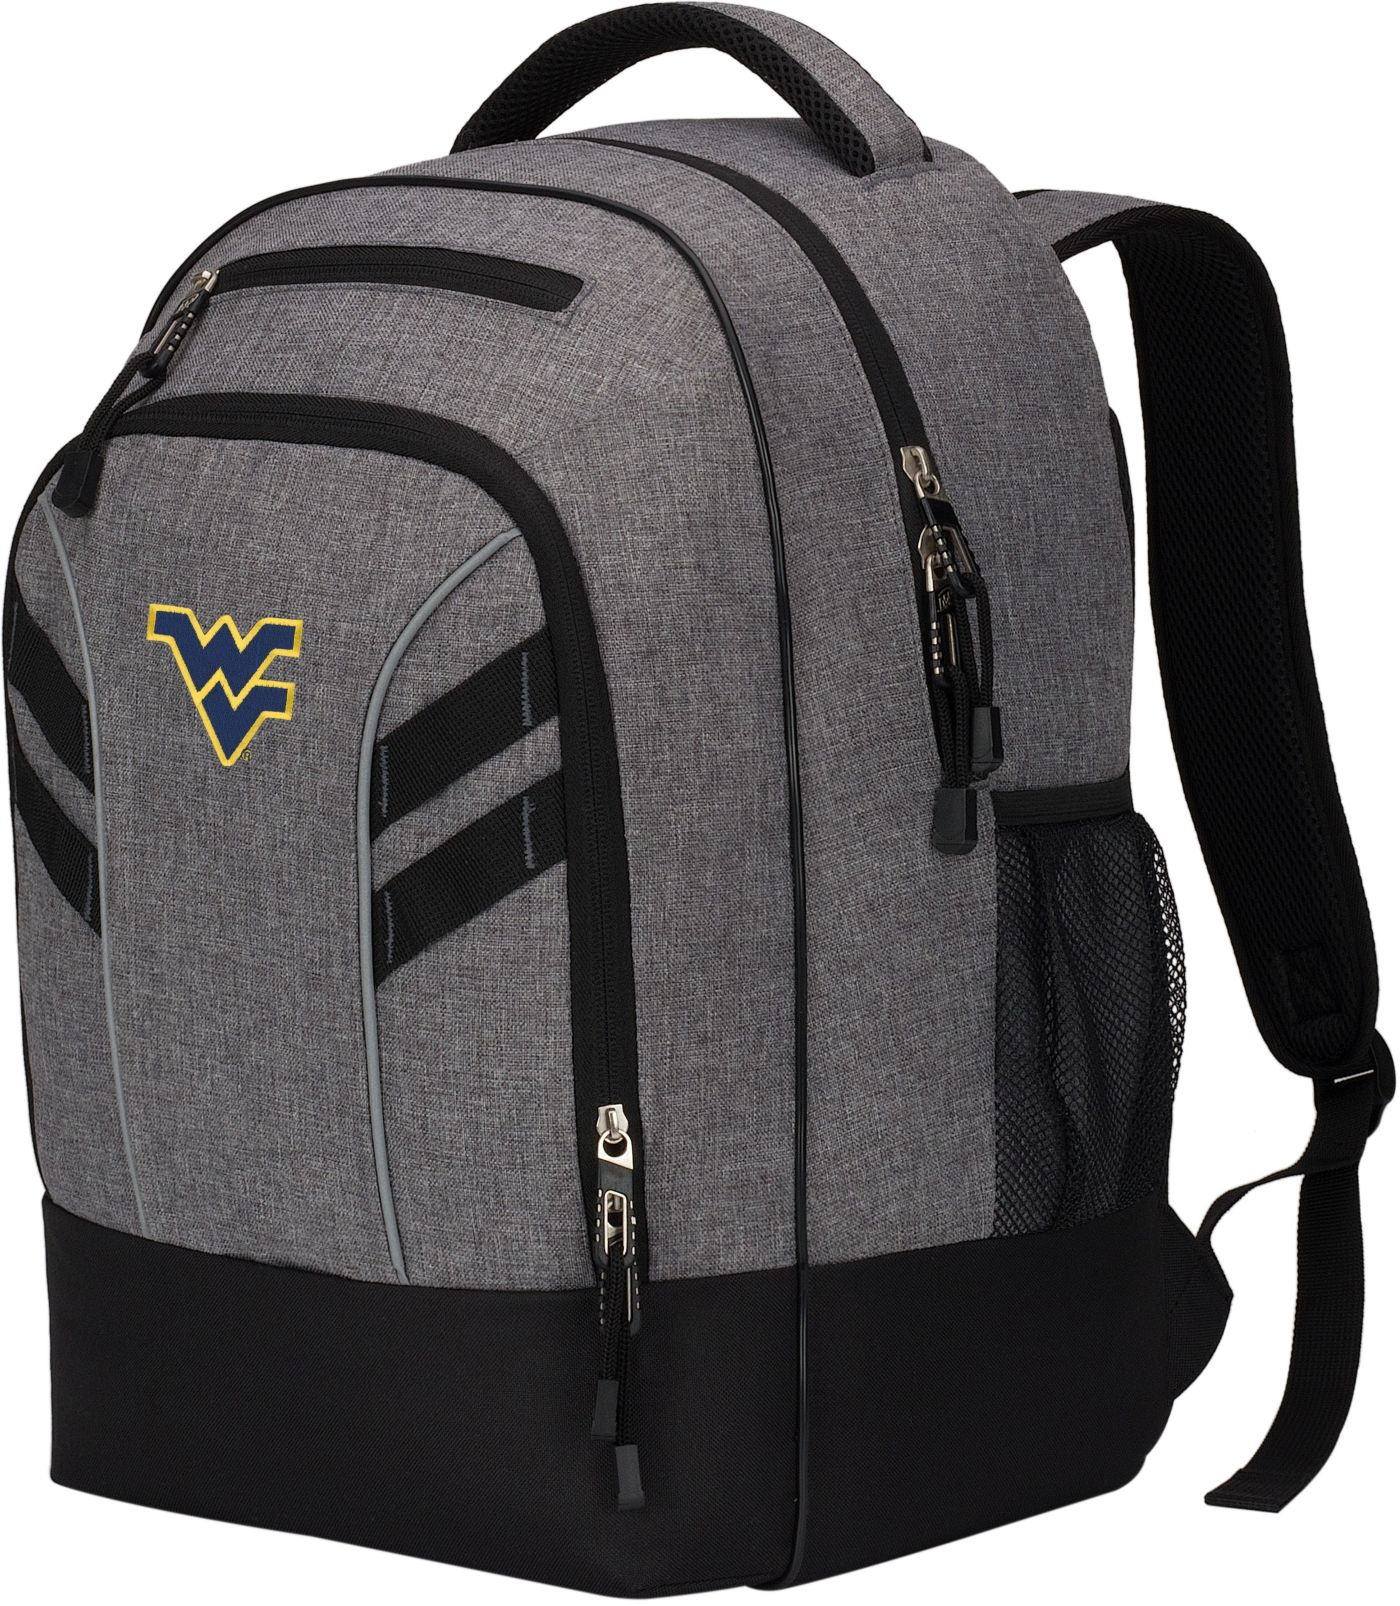 Northwest West Virginia Mountaineers Razor Backpack